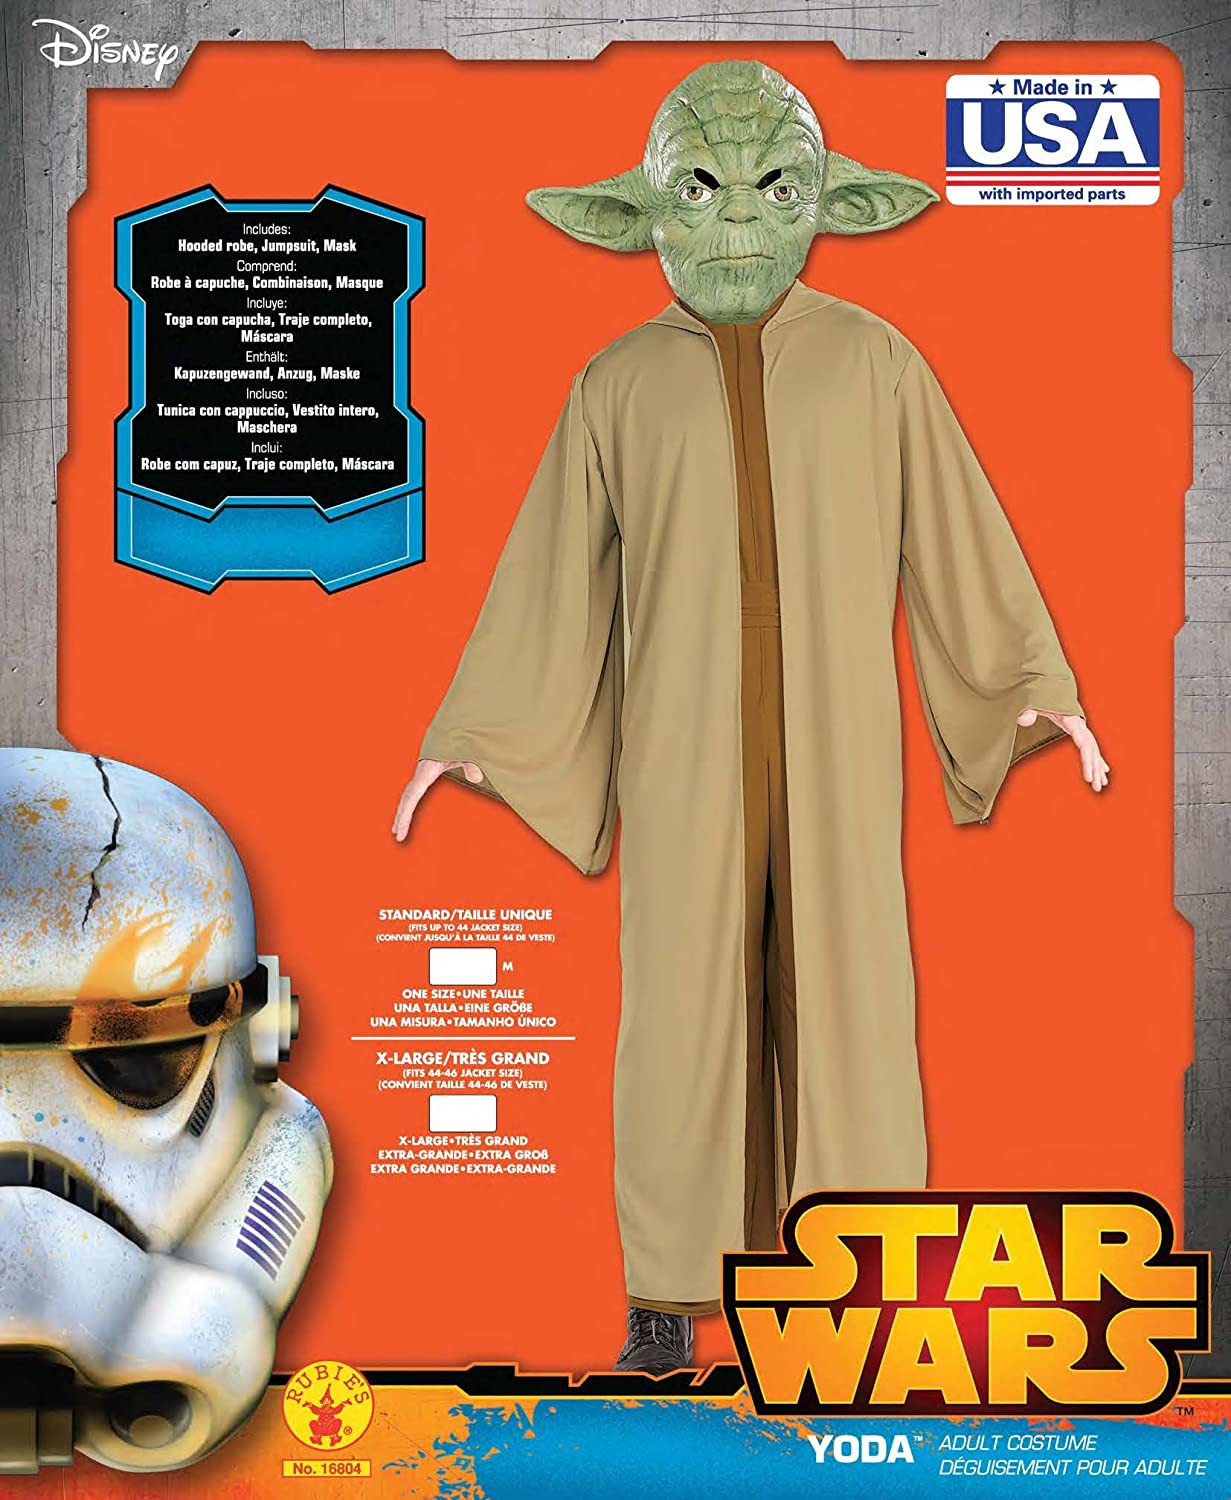 Amazon.com: Disney Star Wars Yoda Adult Costume: Clothing